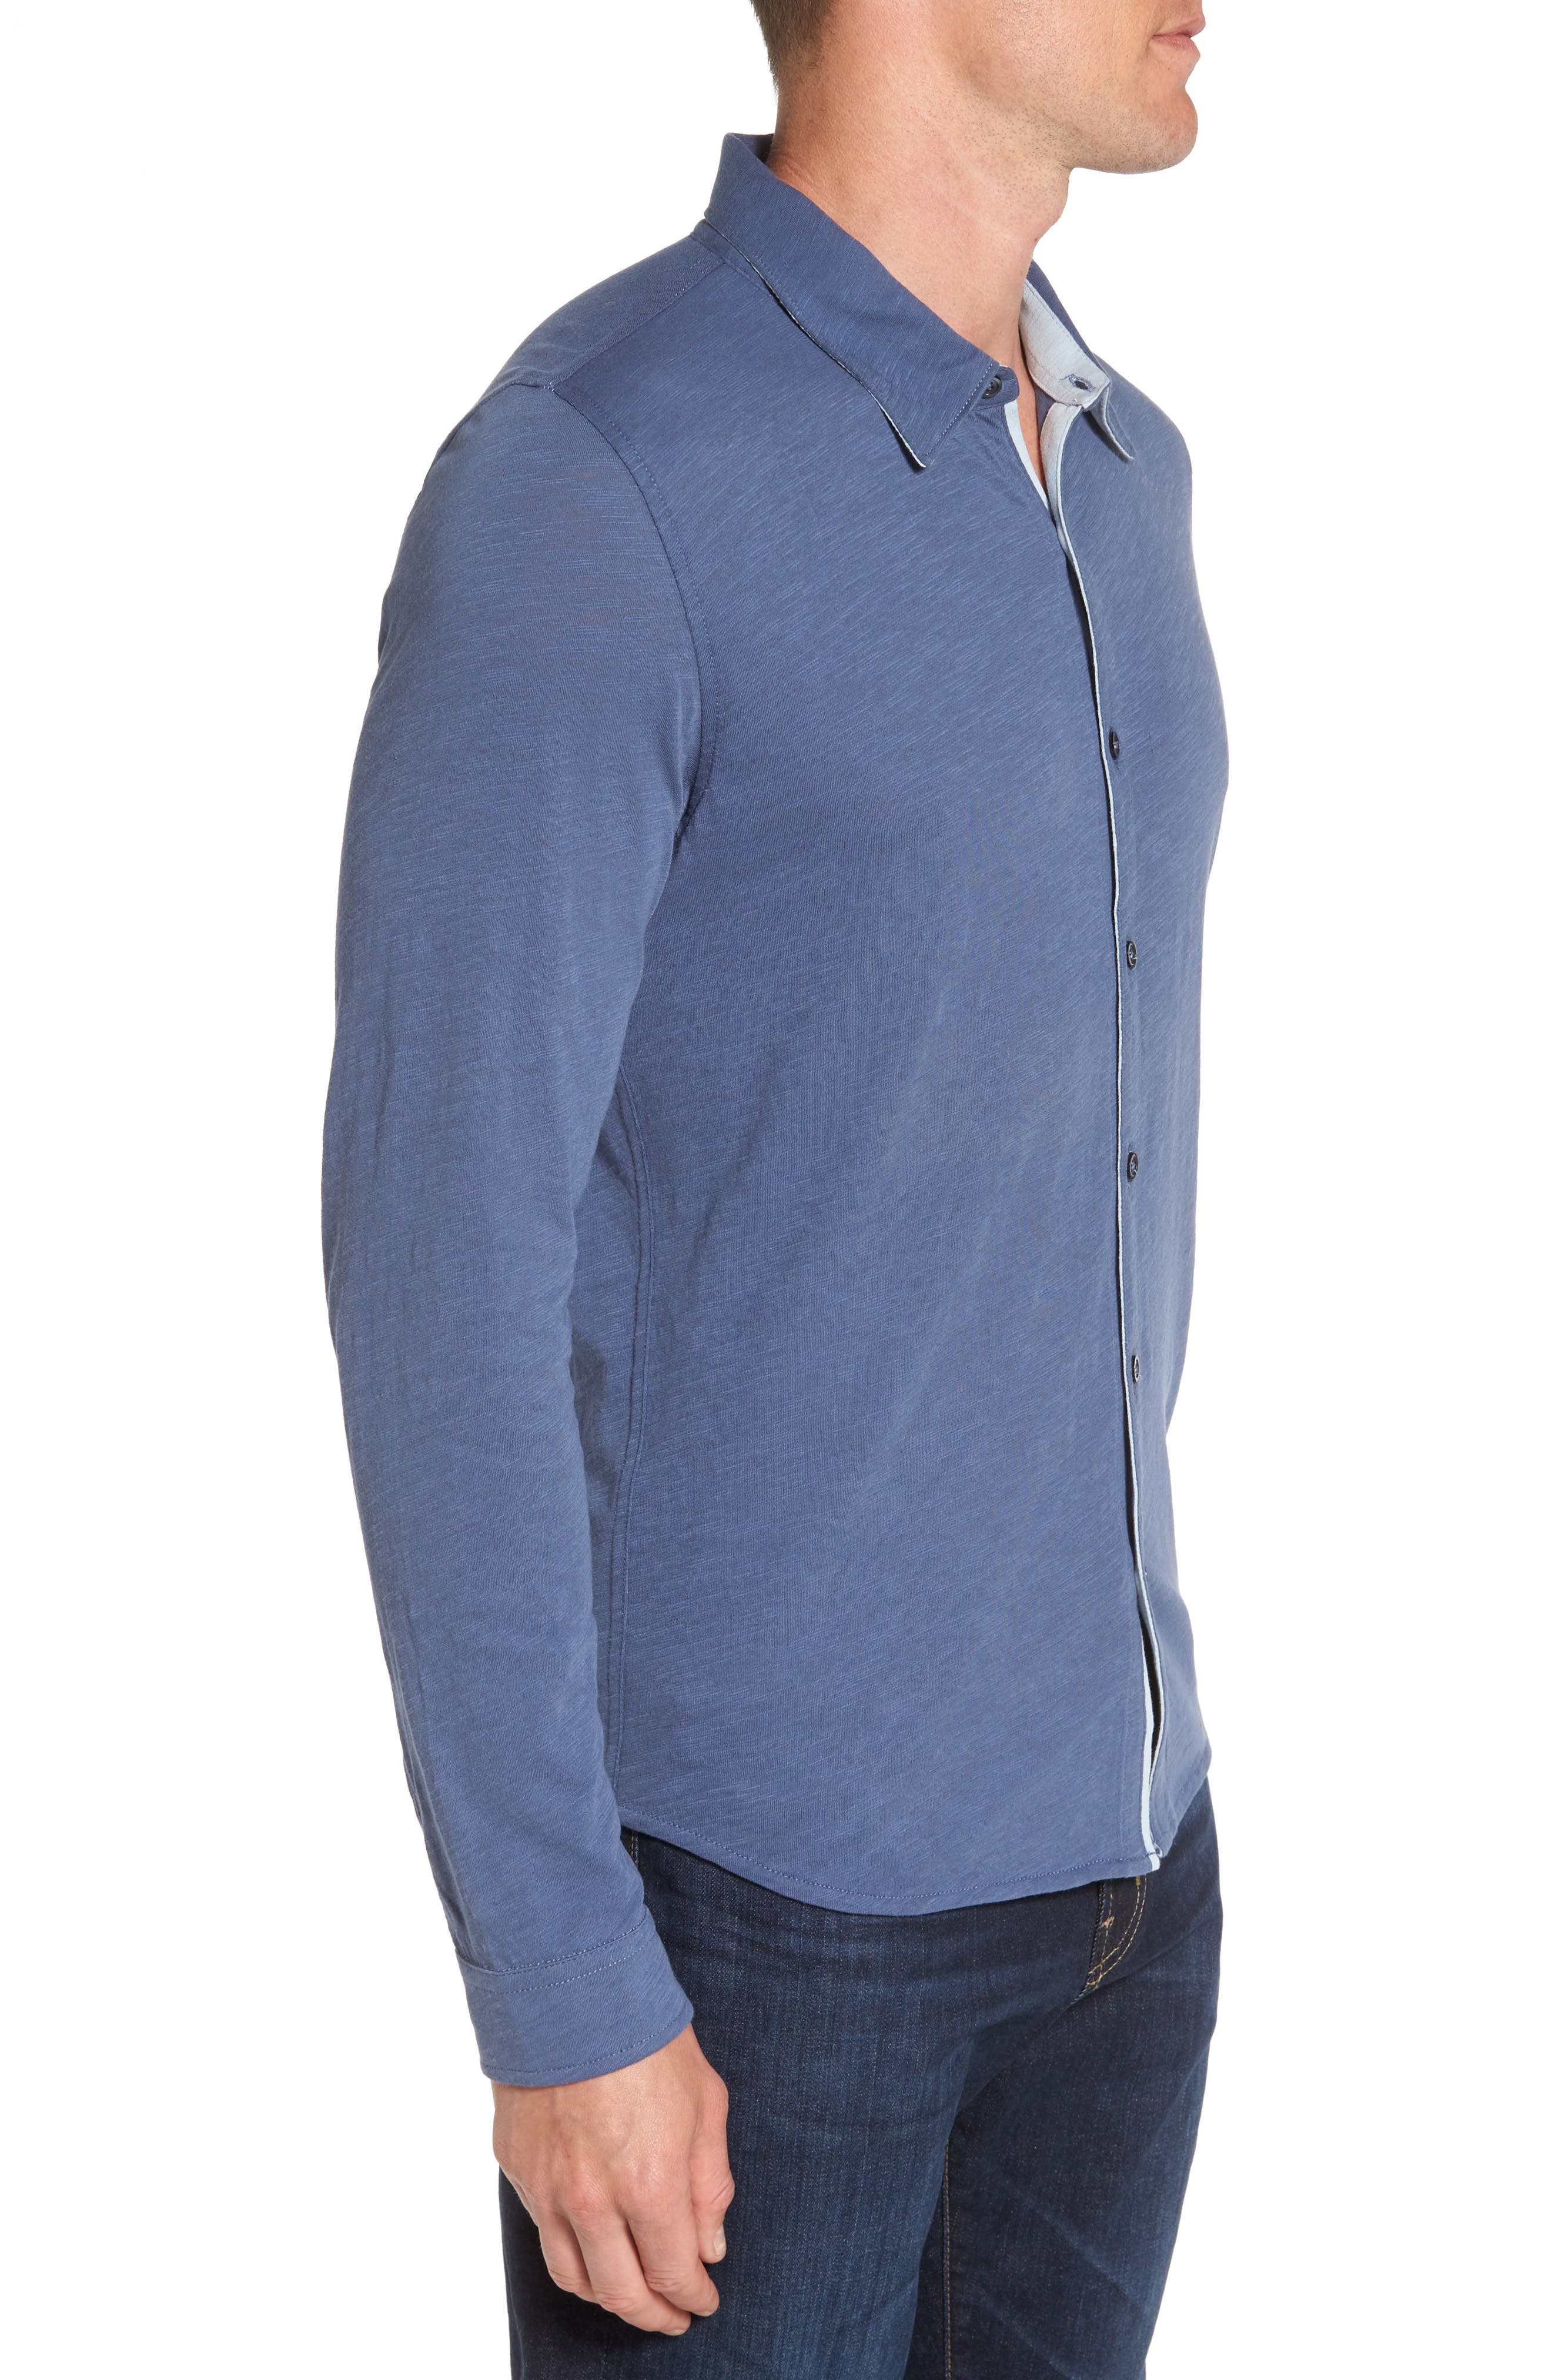 Alternate Image 3  - Zachary Prell Camara Trim Fit Knit Sport Shirt